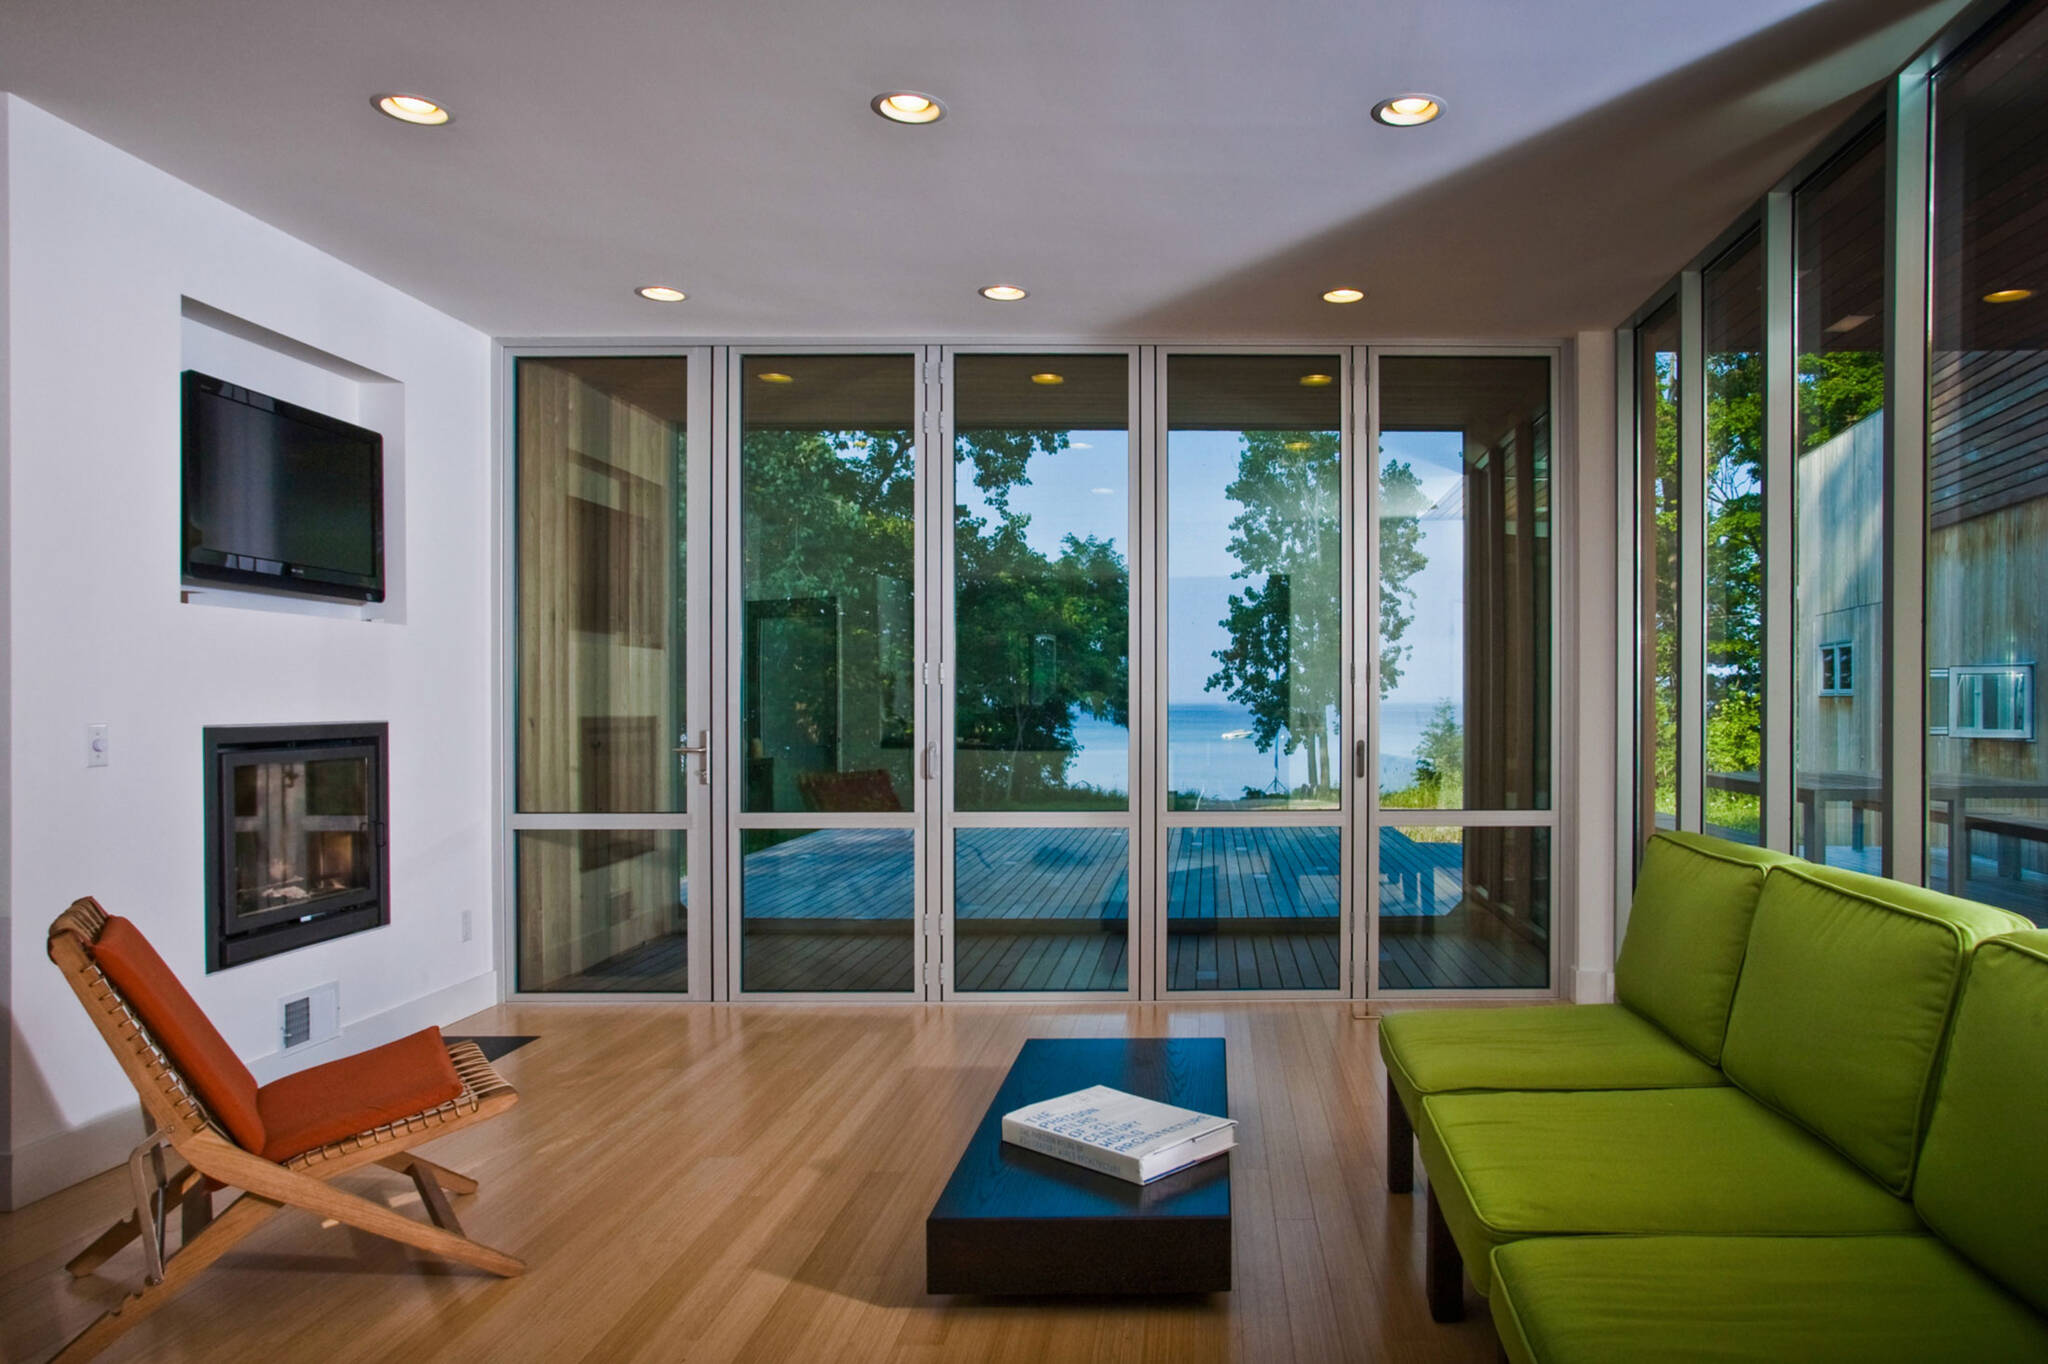 Folding doors sequence on the living room of the sustainable lake house project in Omena, Michigan designed by the architecture studio Danny Forster & Architecture